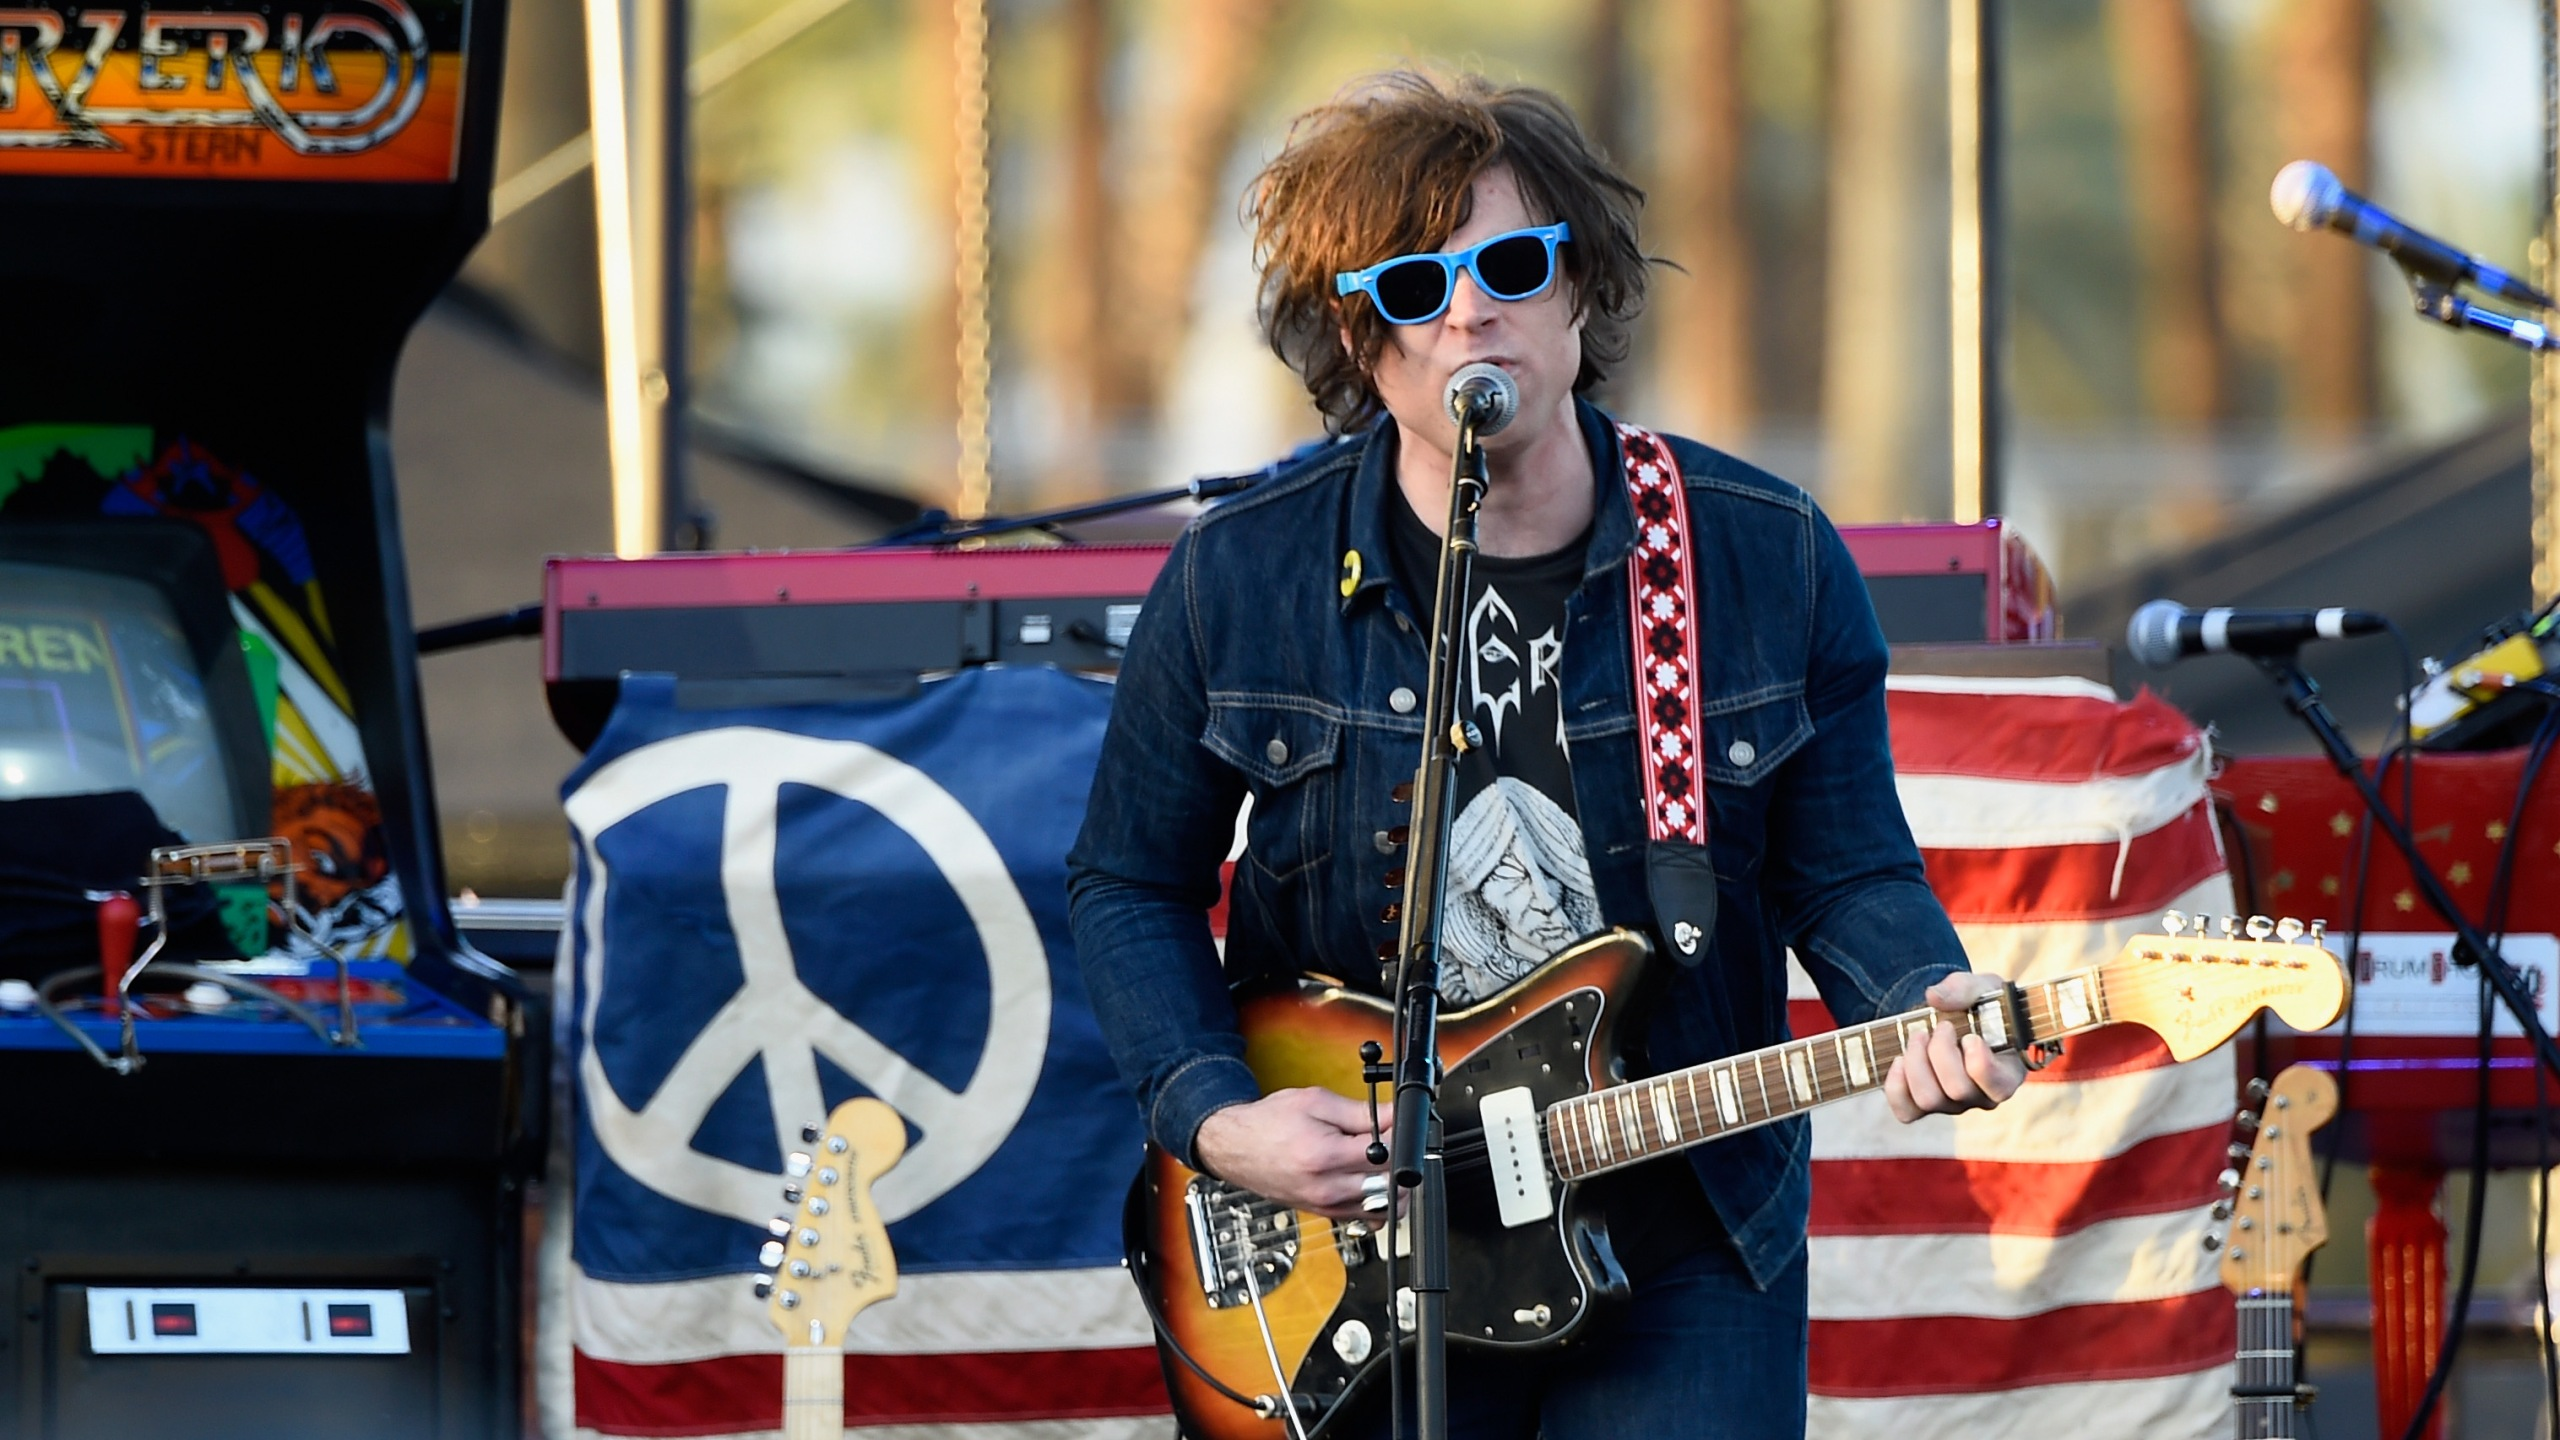 Singer-songwriter Ryan Adams performs during day three of the 2015 Coachella Valley Music & Arts Festival in Indio. (Credit: Frazer Harrison / Getty Images for Coachella)